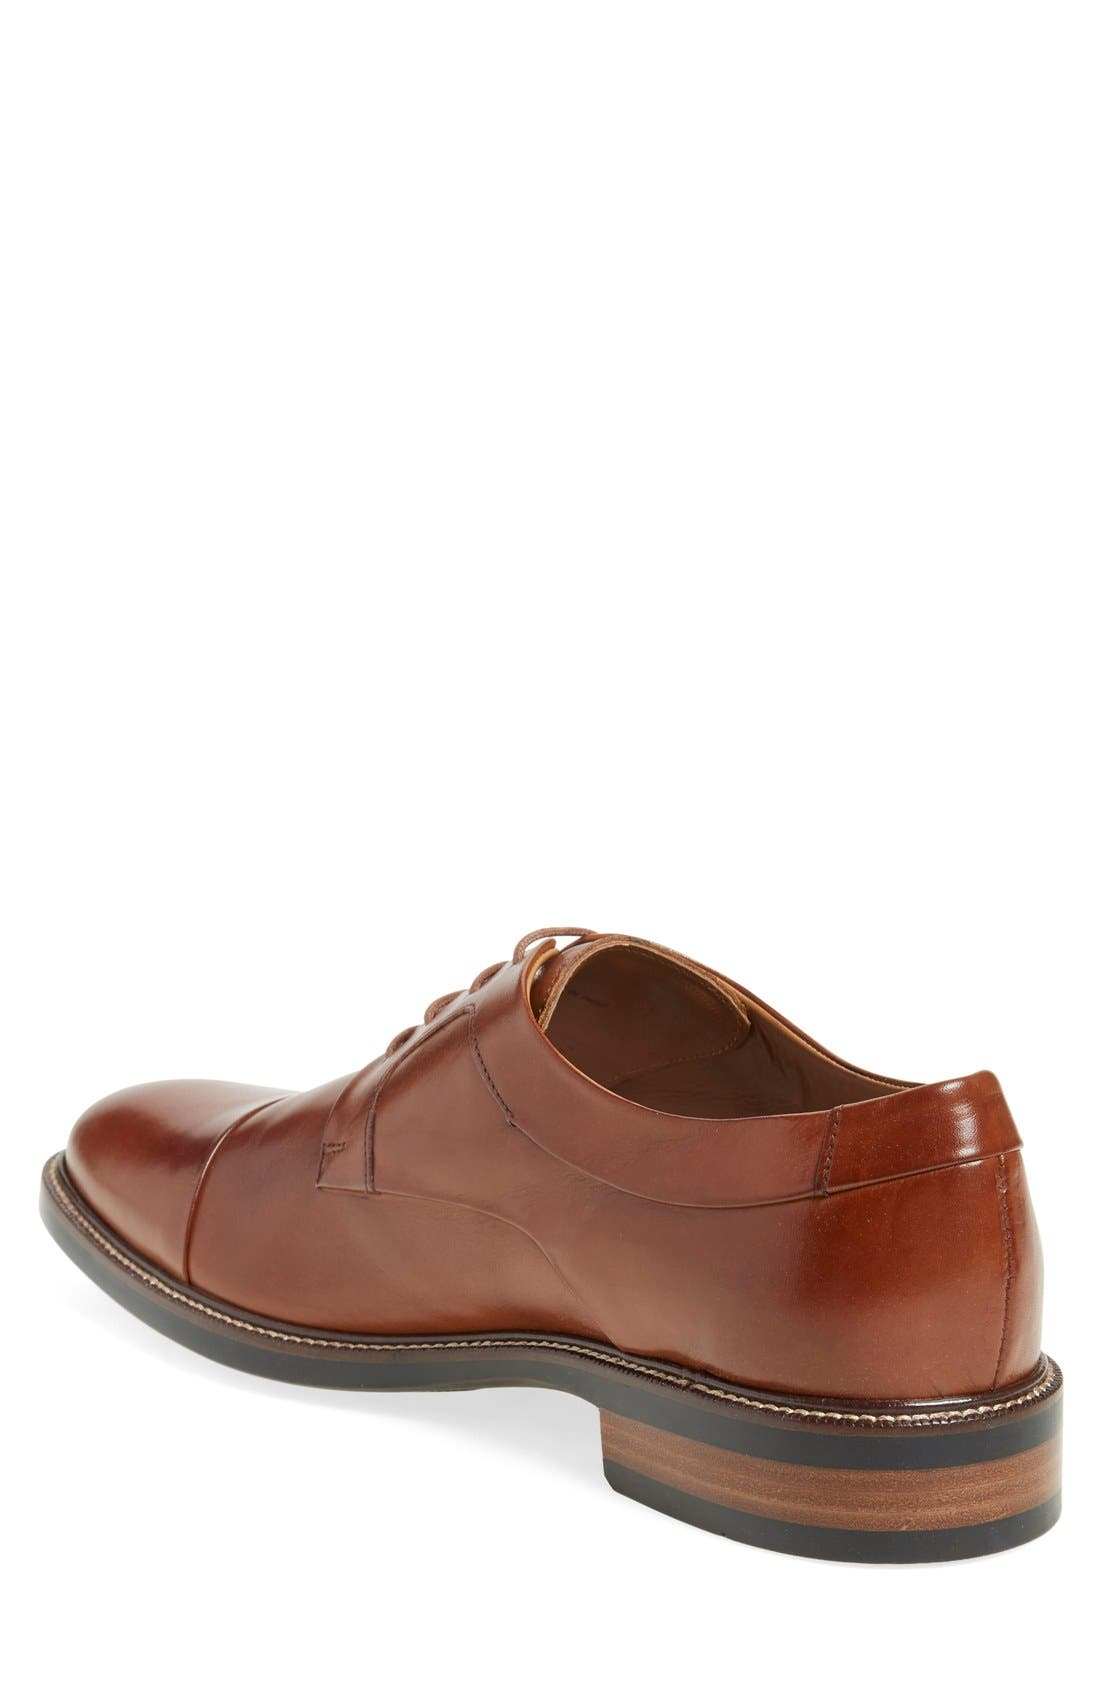 Warren Cap Toe Derby,                             Alternate thumbnail 8, color,                             BRITISH TAN LEATHER